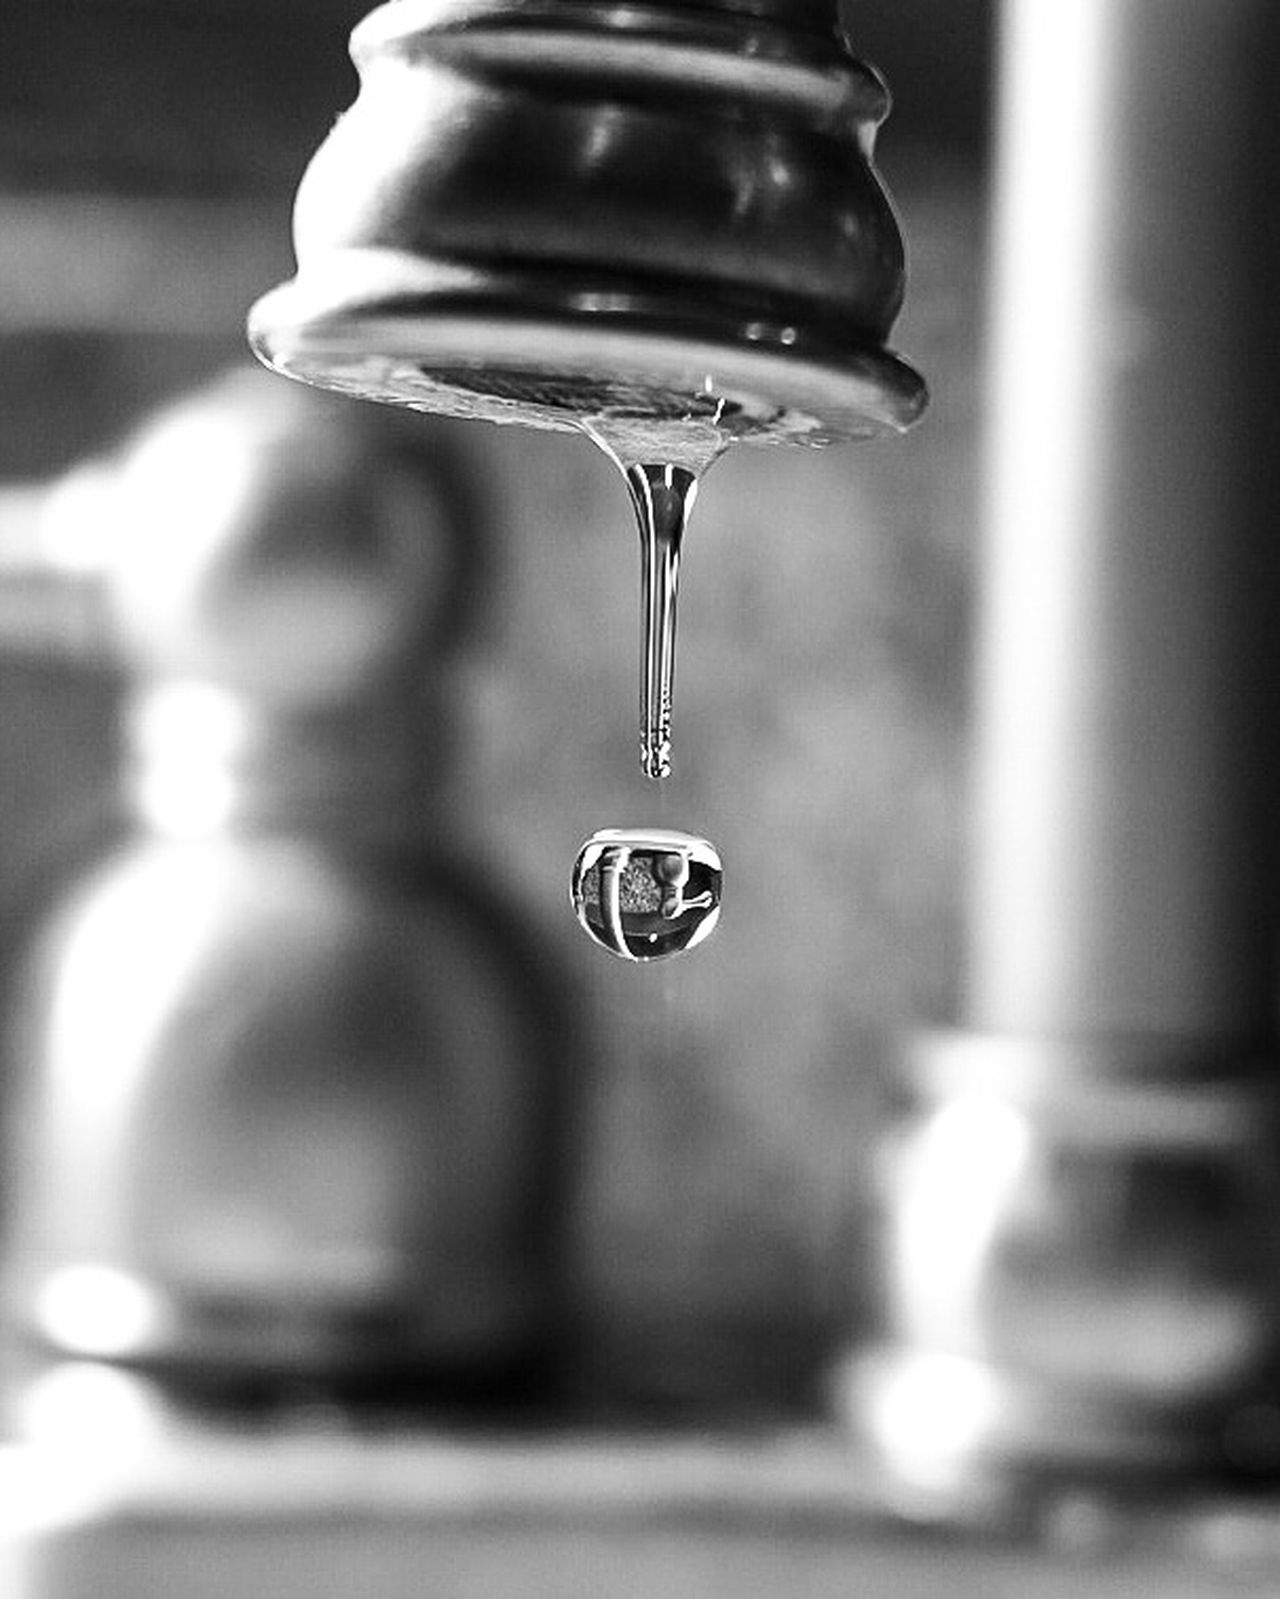 The little things Drop No People Close-up Indoors  Water Freshness Day Dripping Canonphotography Canon Fineart_photo Canon70d Selective Focus Tranquil Scene Macro Freshness Focus On Foreground Arts Culture And Entertainment Sharp Flash Photography Blackandwhite Blackandwhite Photography